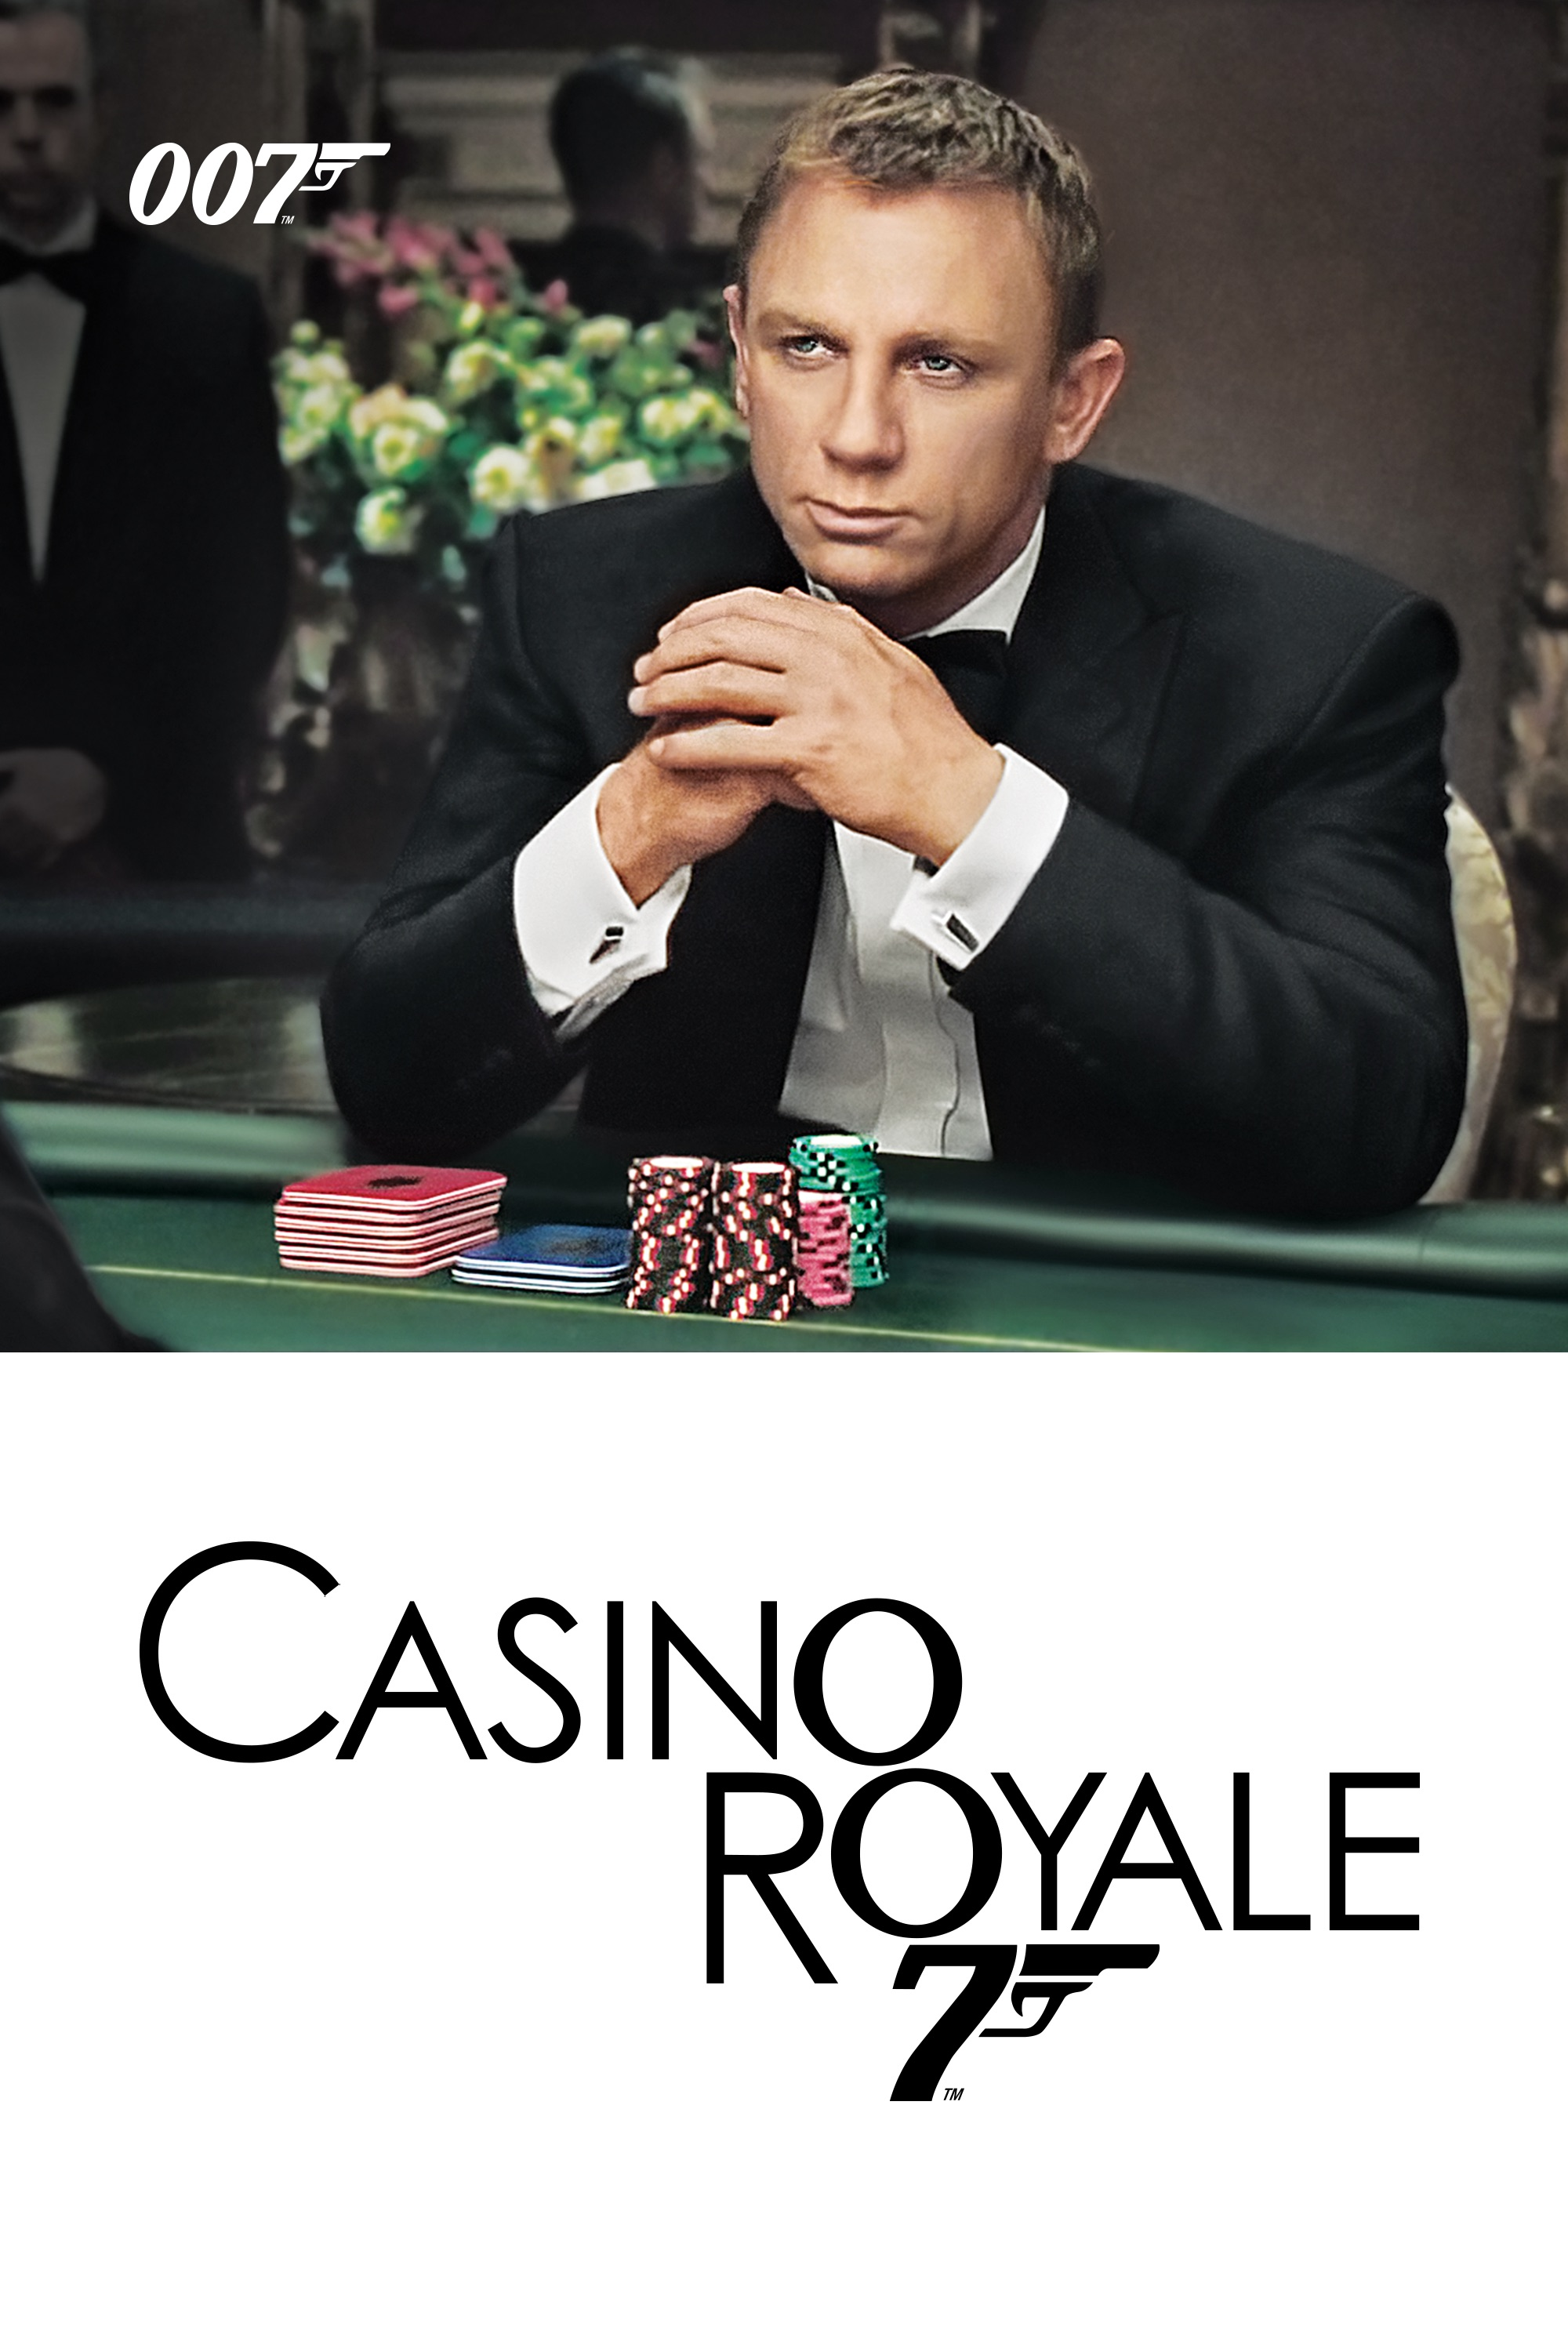 Casino Royal Bsewicht